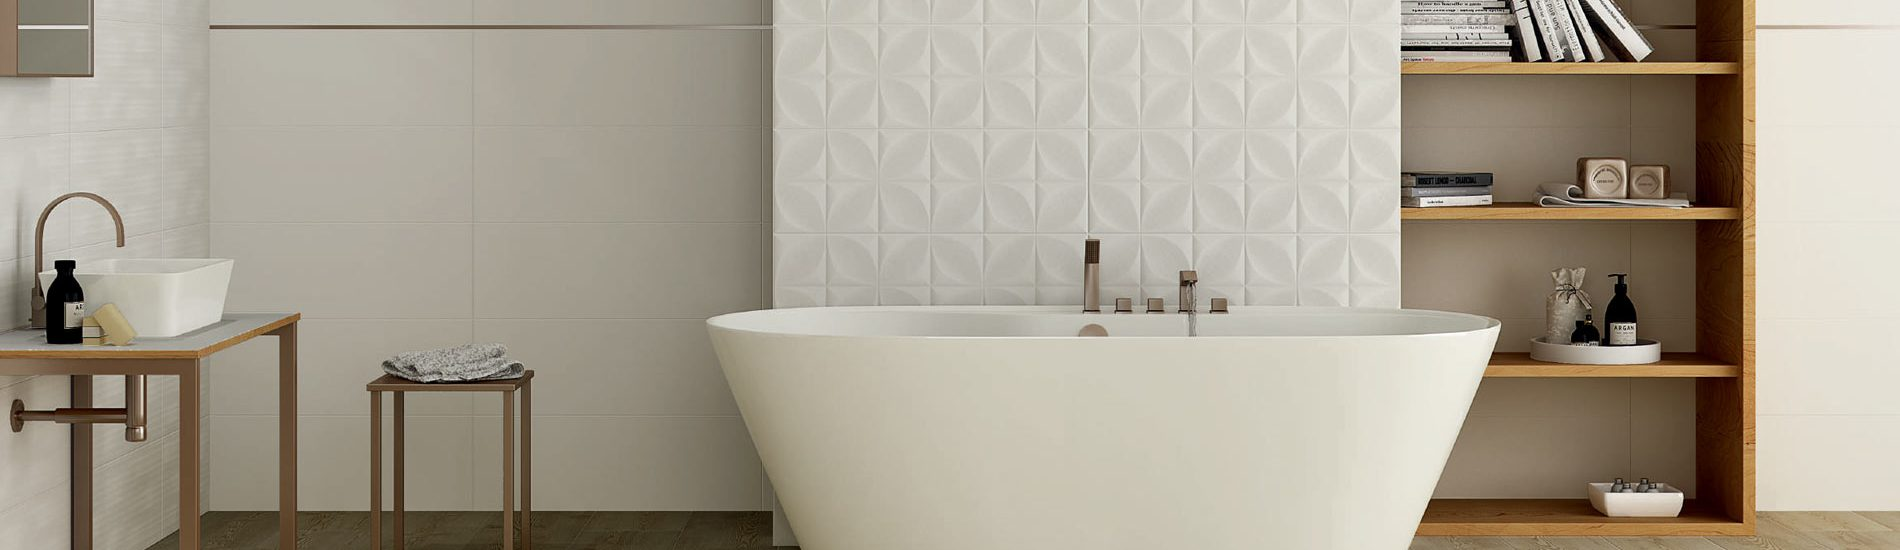 Polar Spanish Wall Tile - BV Tile and Stone